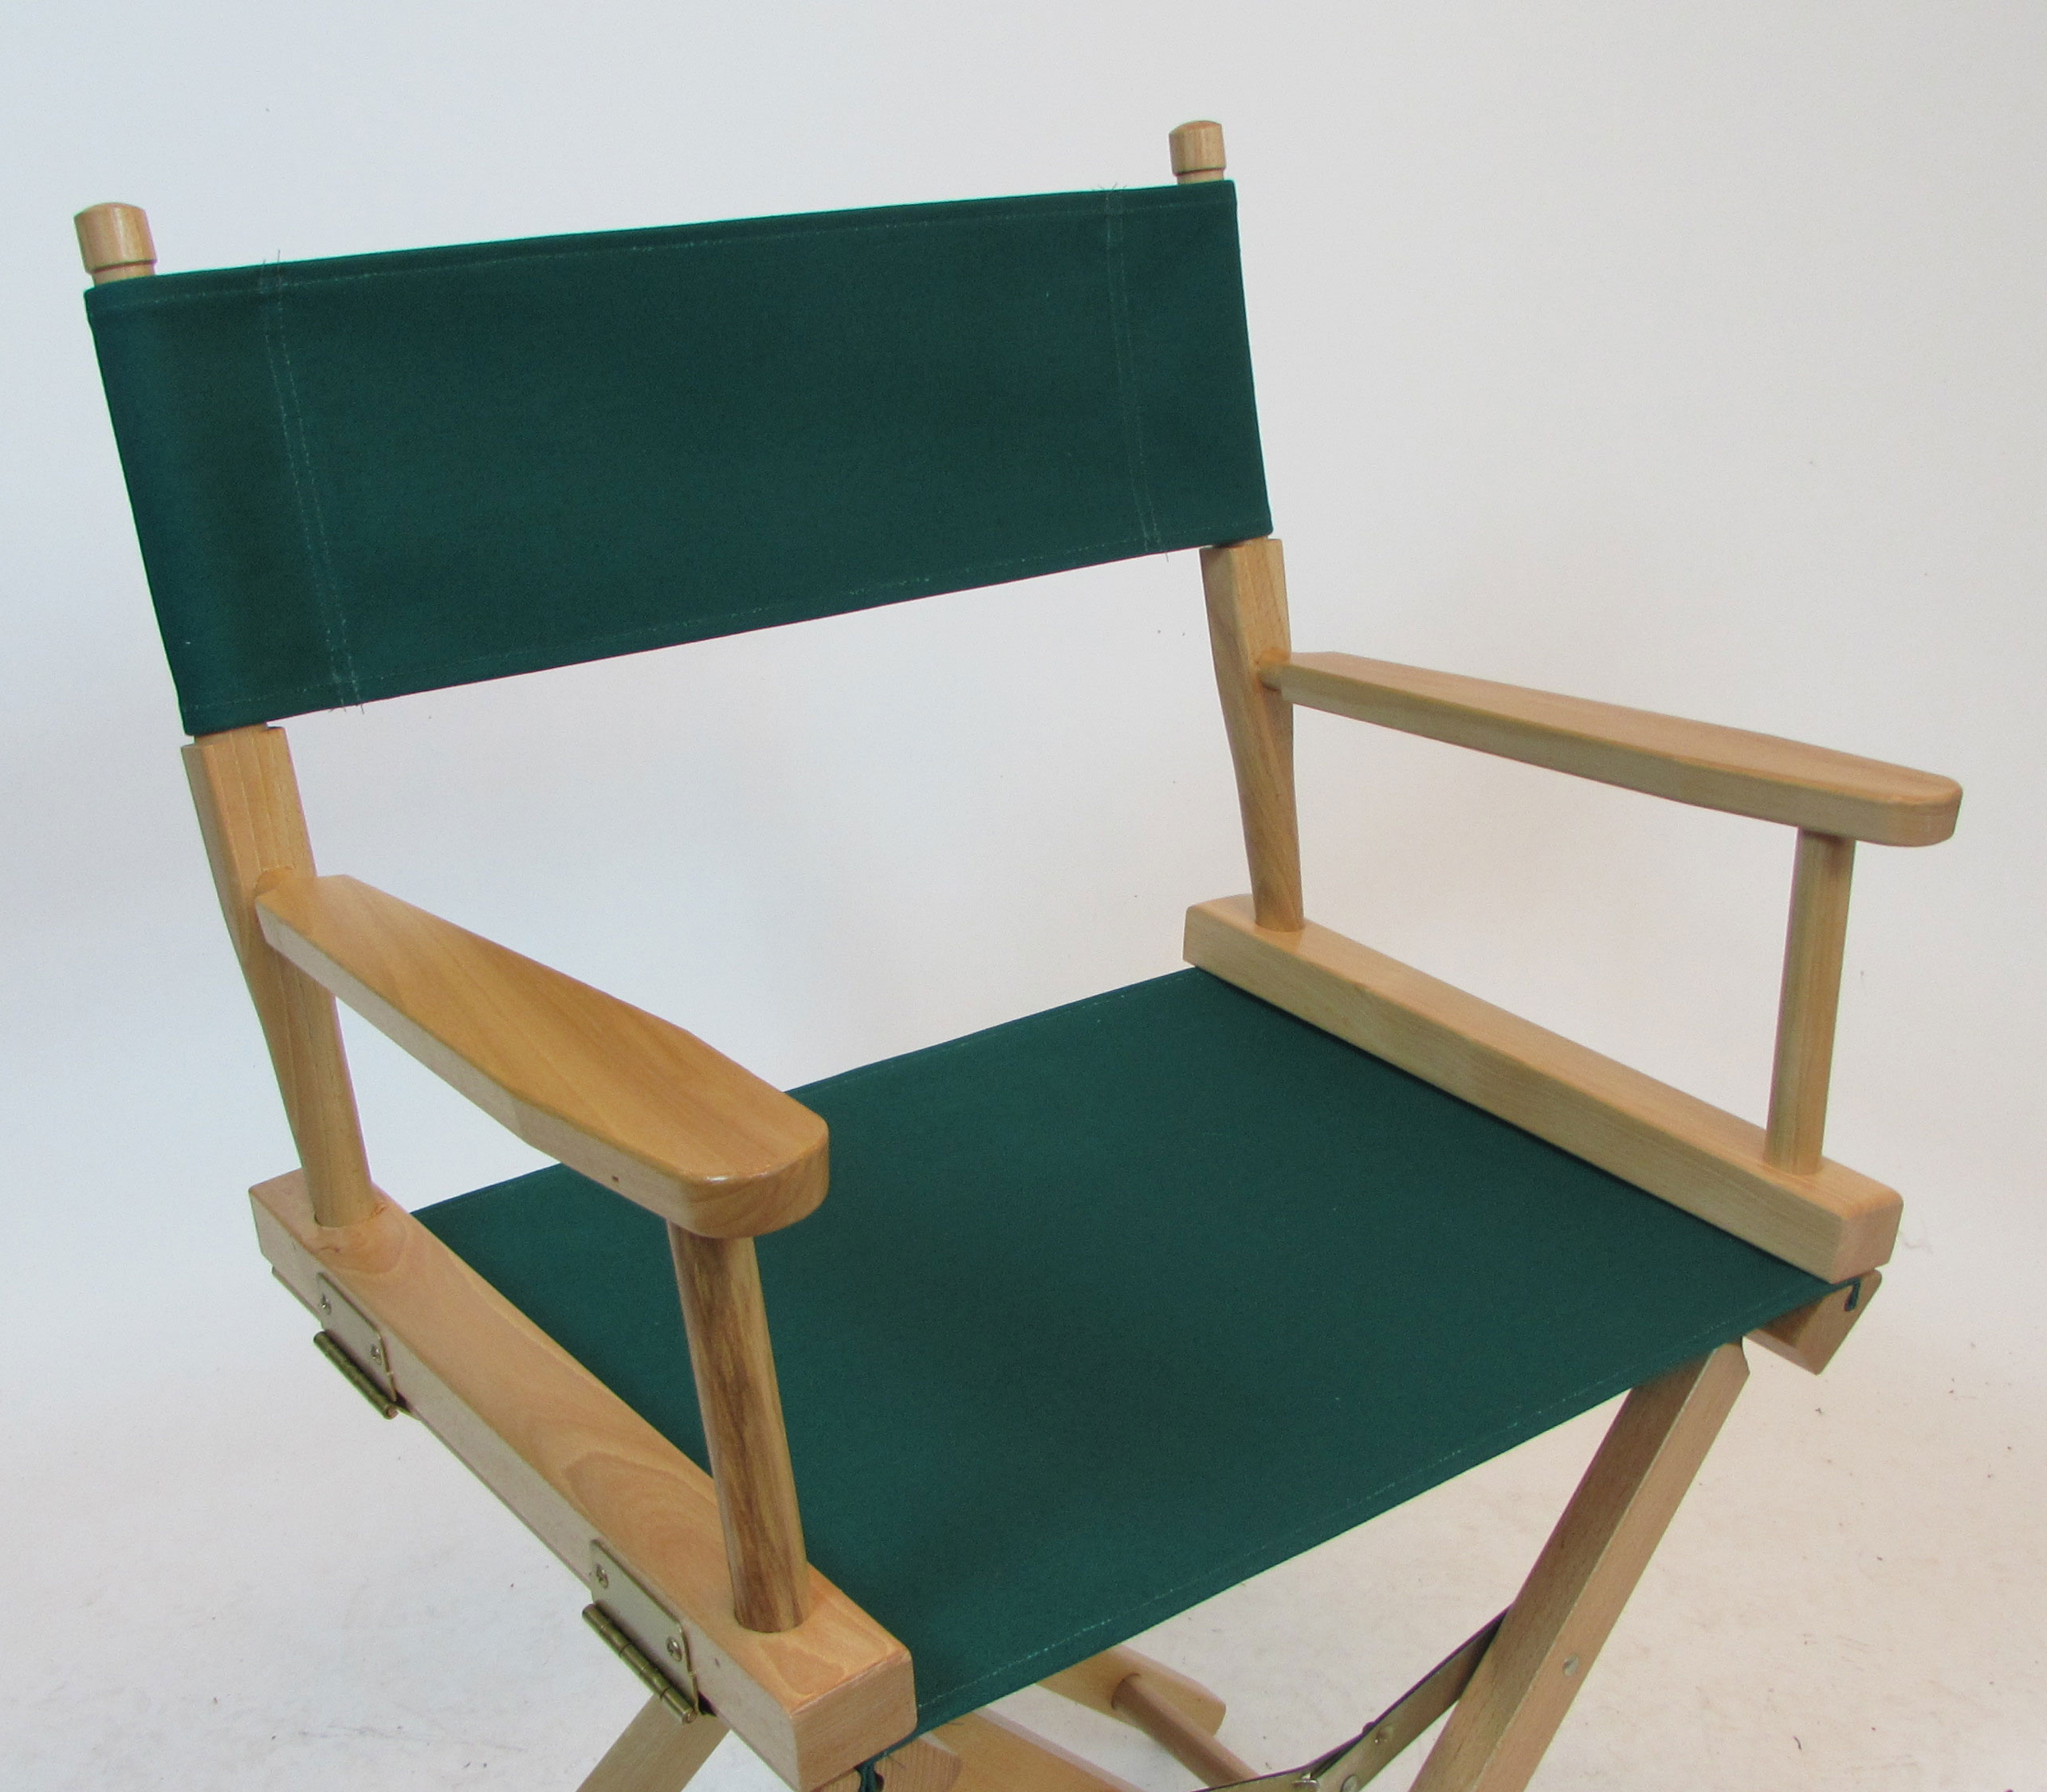 Green Chair Covers Replacement Canvas Covers For Director 39s Chair Flat Stick